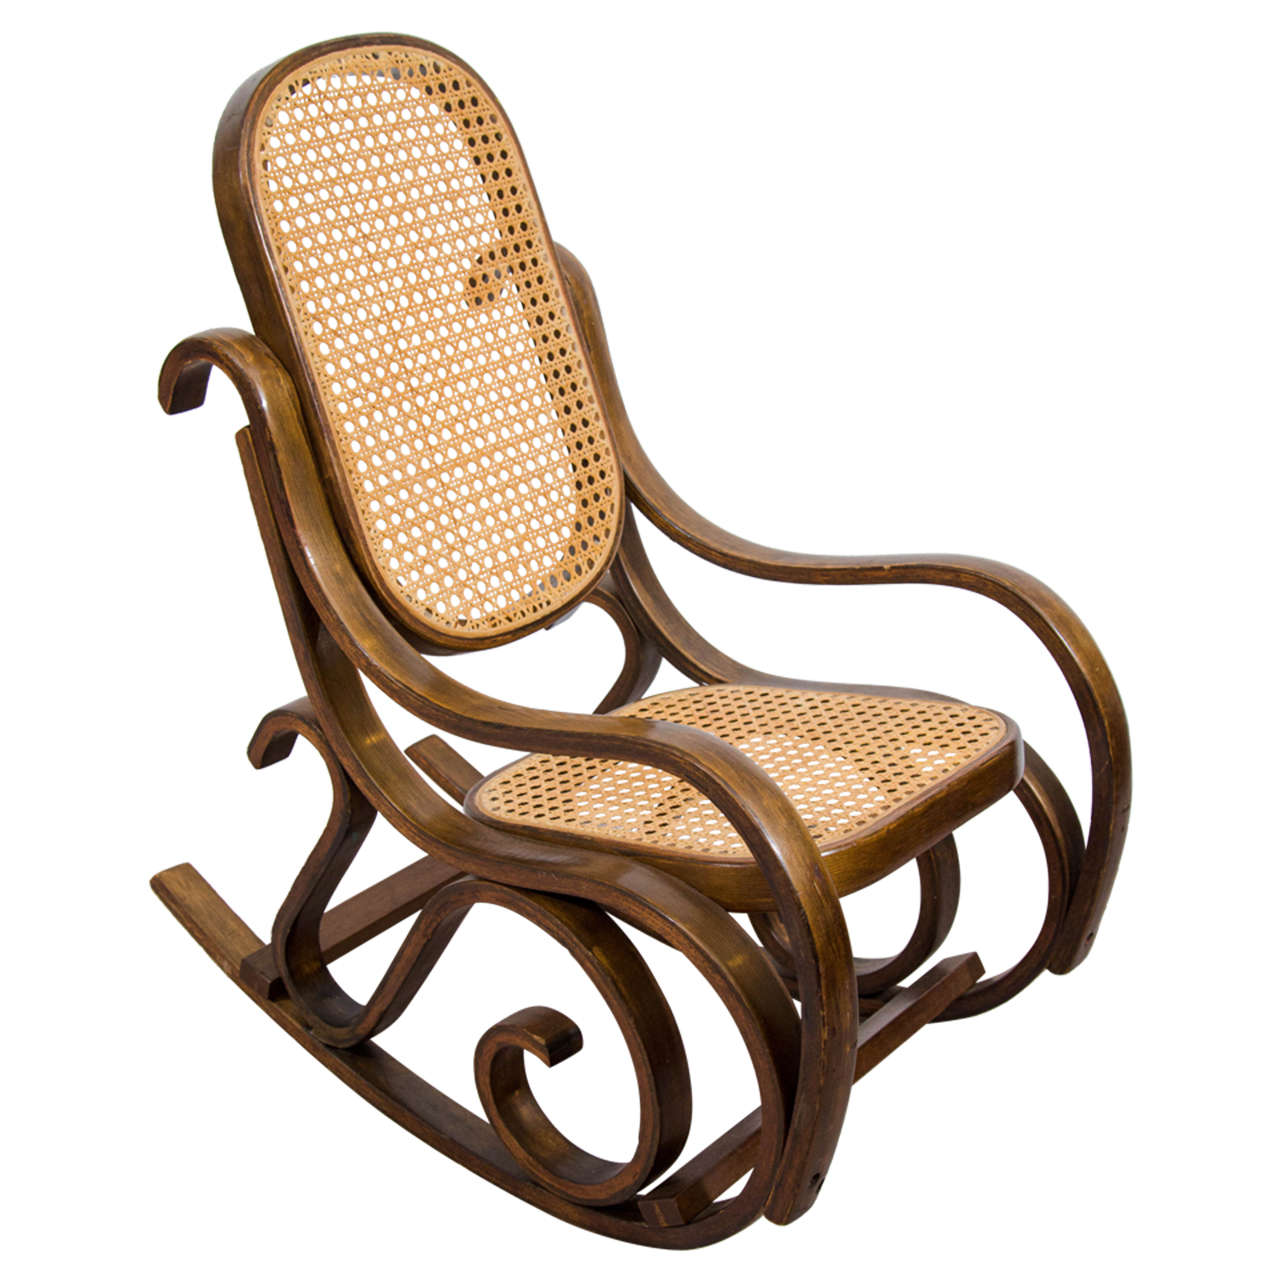 midcentury child 39 s bentwood rocking chair for sale at 1stdibs. Black Bedroom Furniture Sets. Home Design Ideas